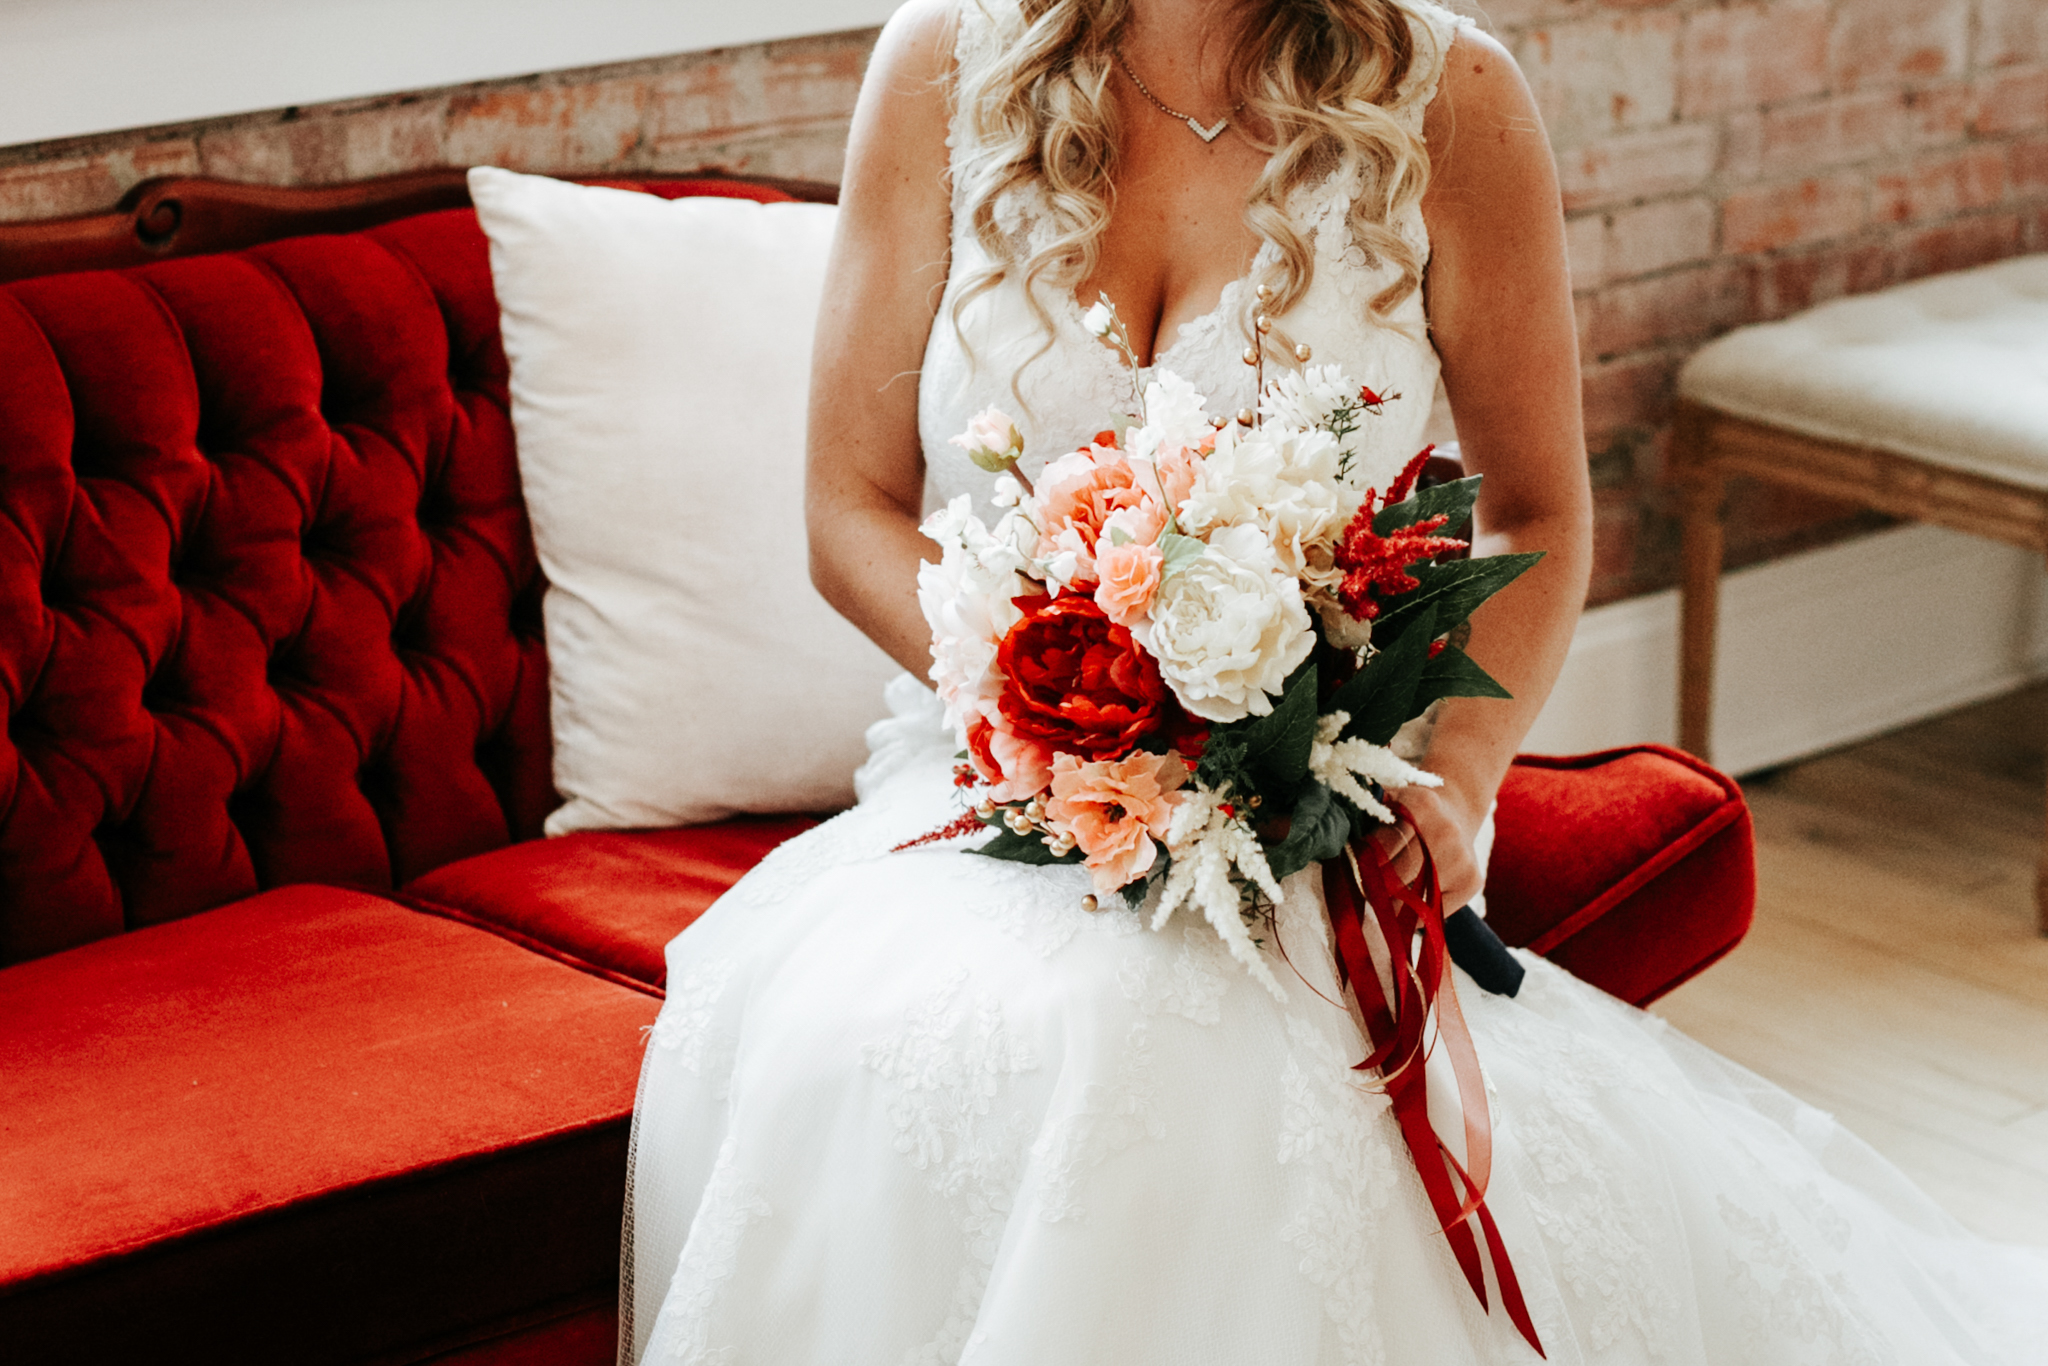 lethbridge-photographer-love-and-be-loved-photography-designed-to-dwell-wedding-katie-kelly-photo-image-picture-5.jpg